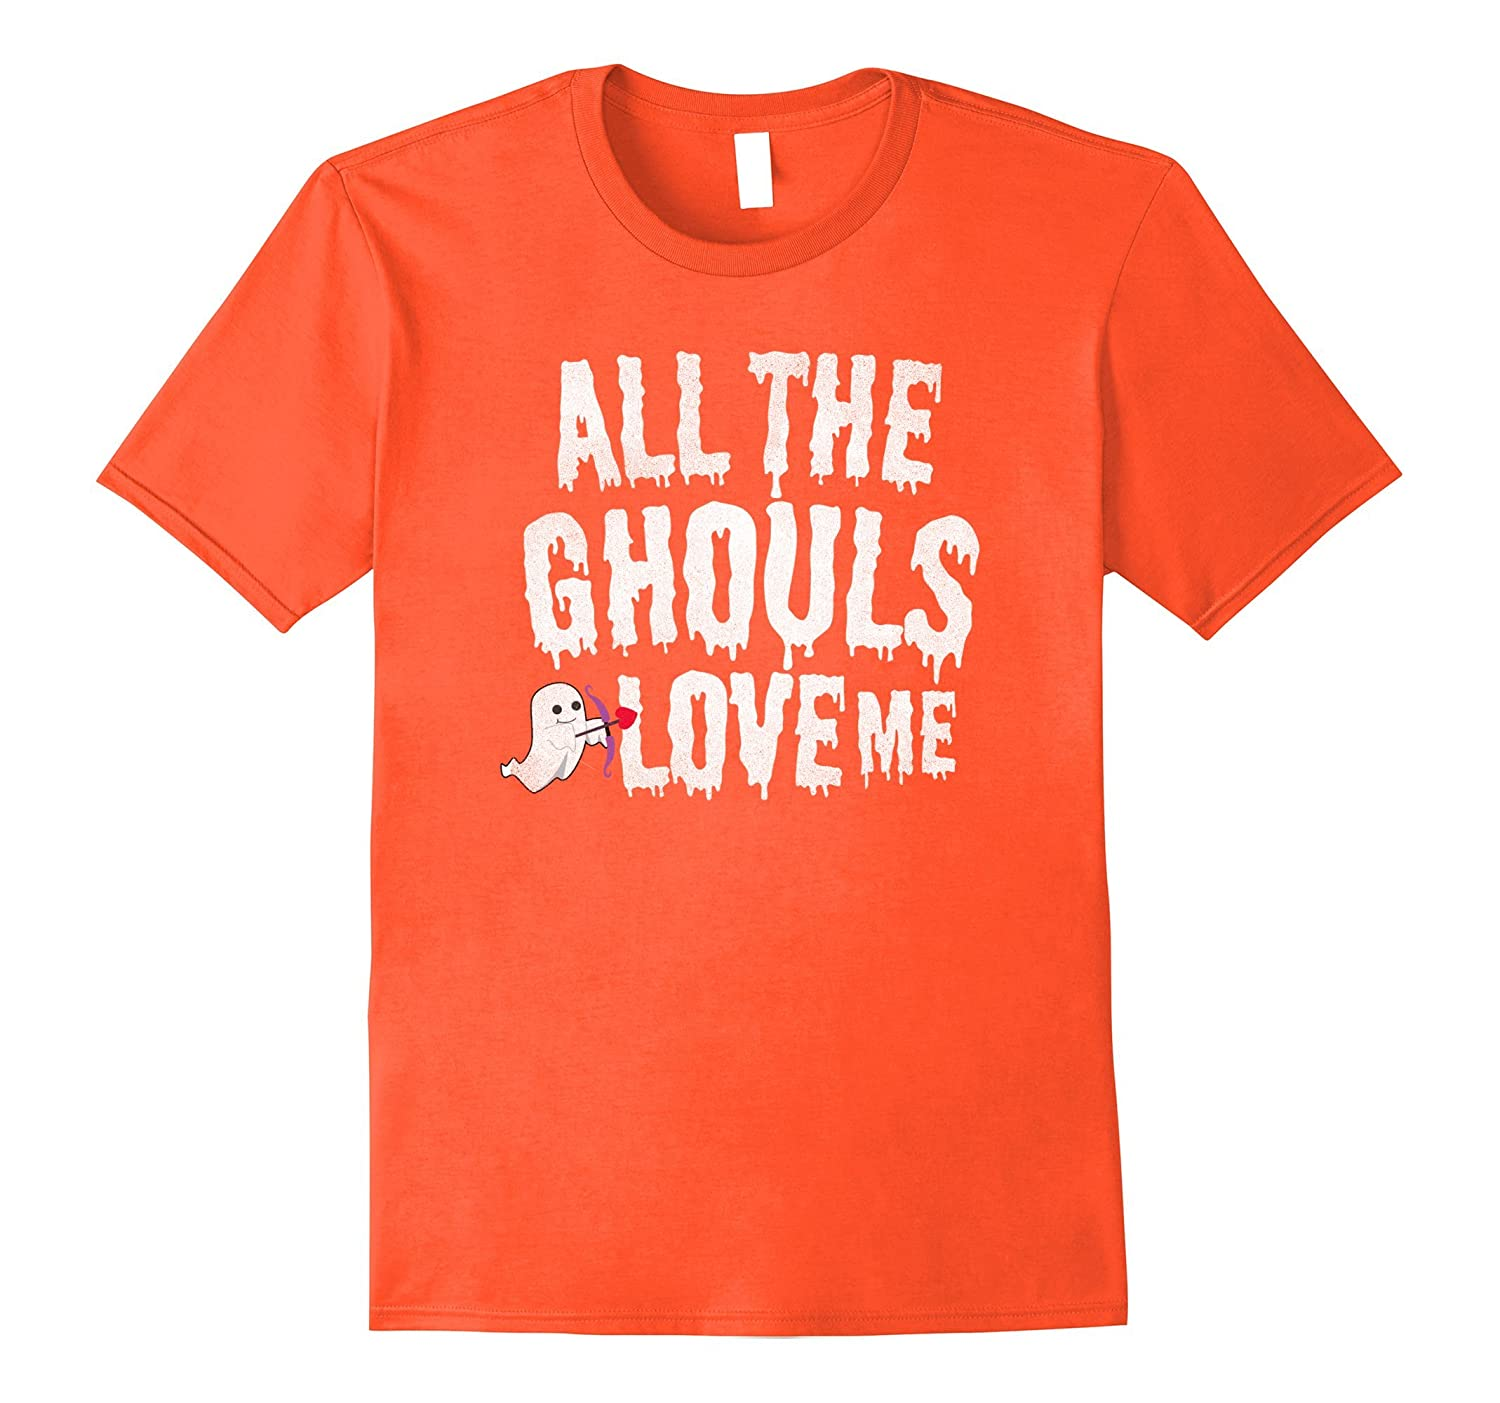 All the Ghouls Love Me, cute, funny boys Halloween t-shirt.-T-Shirt